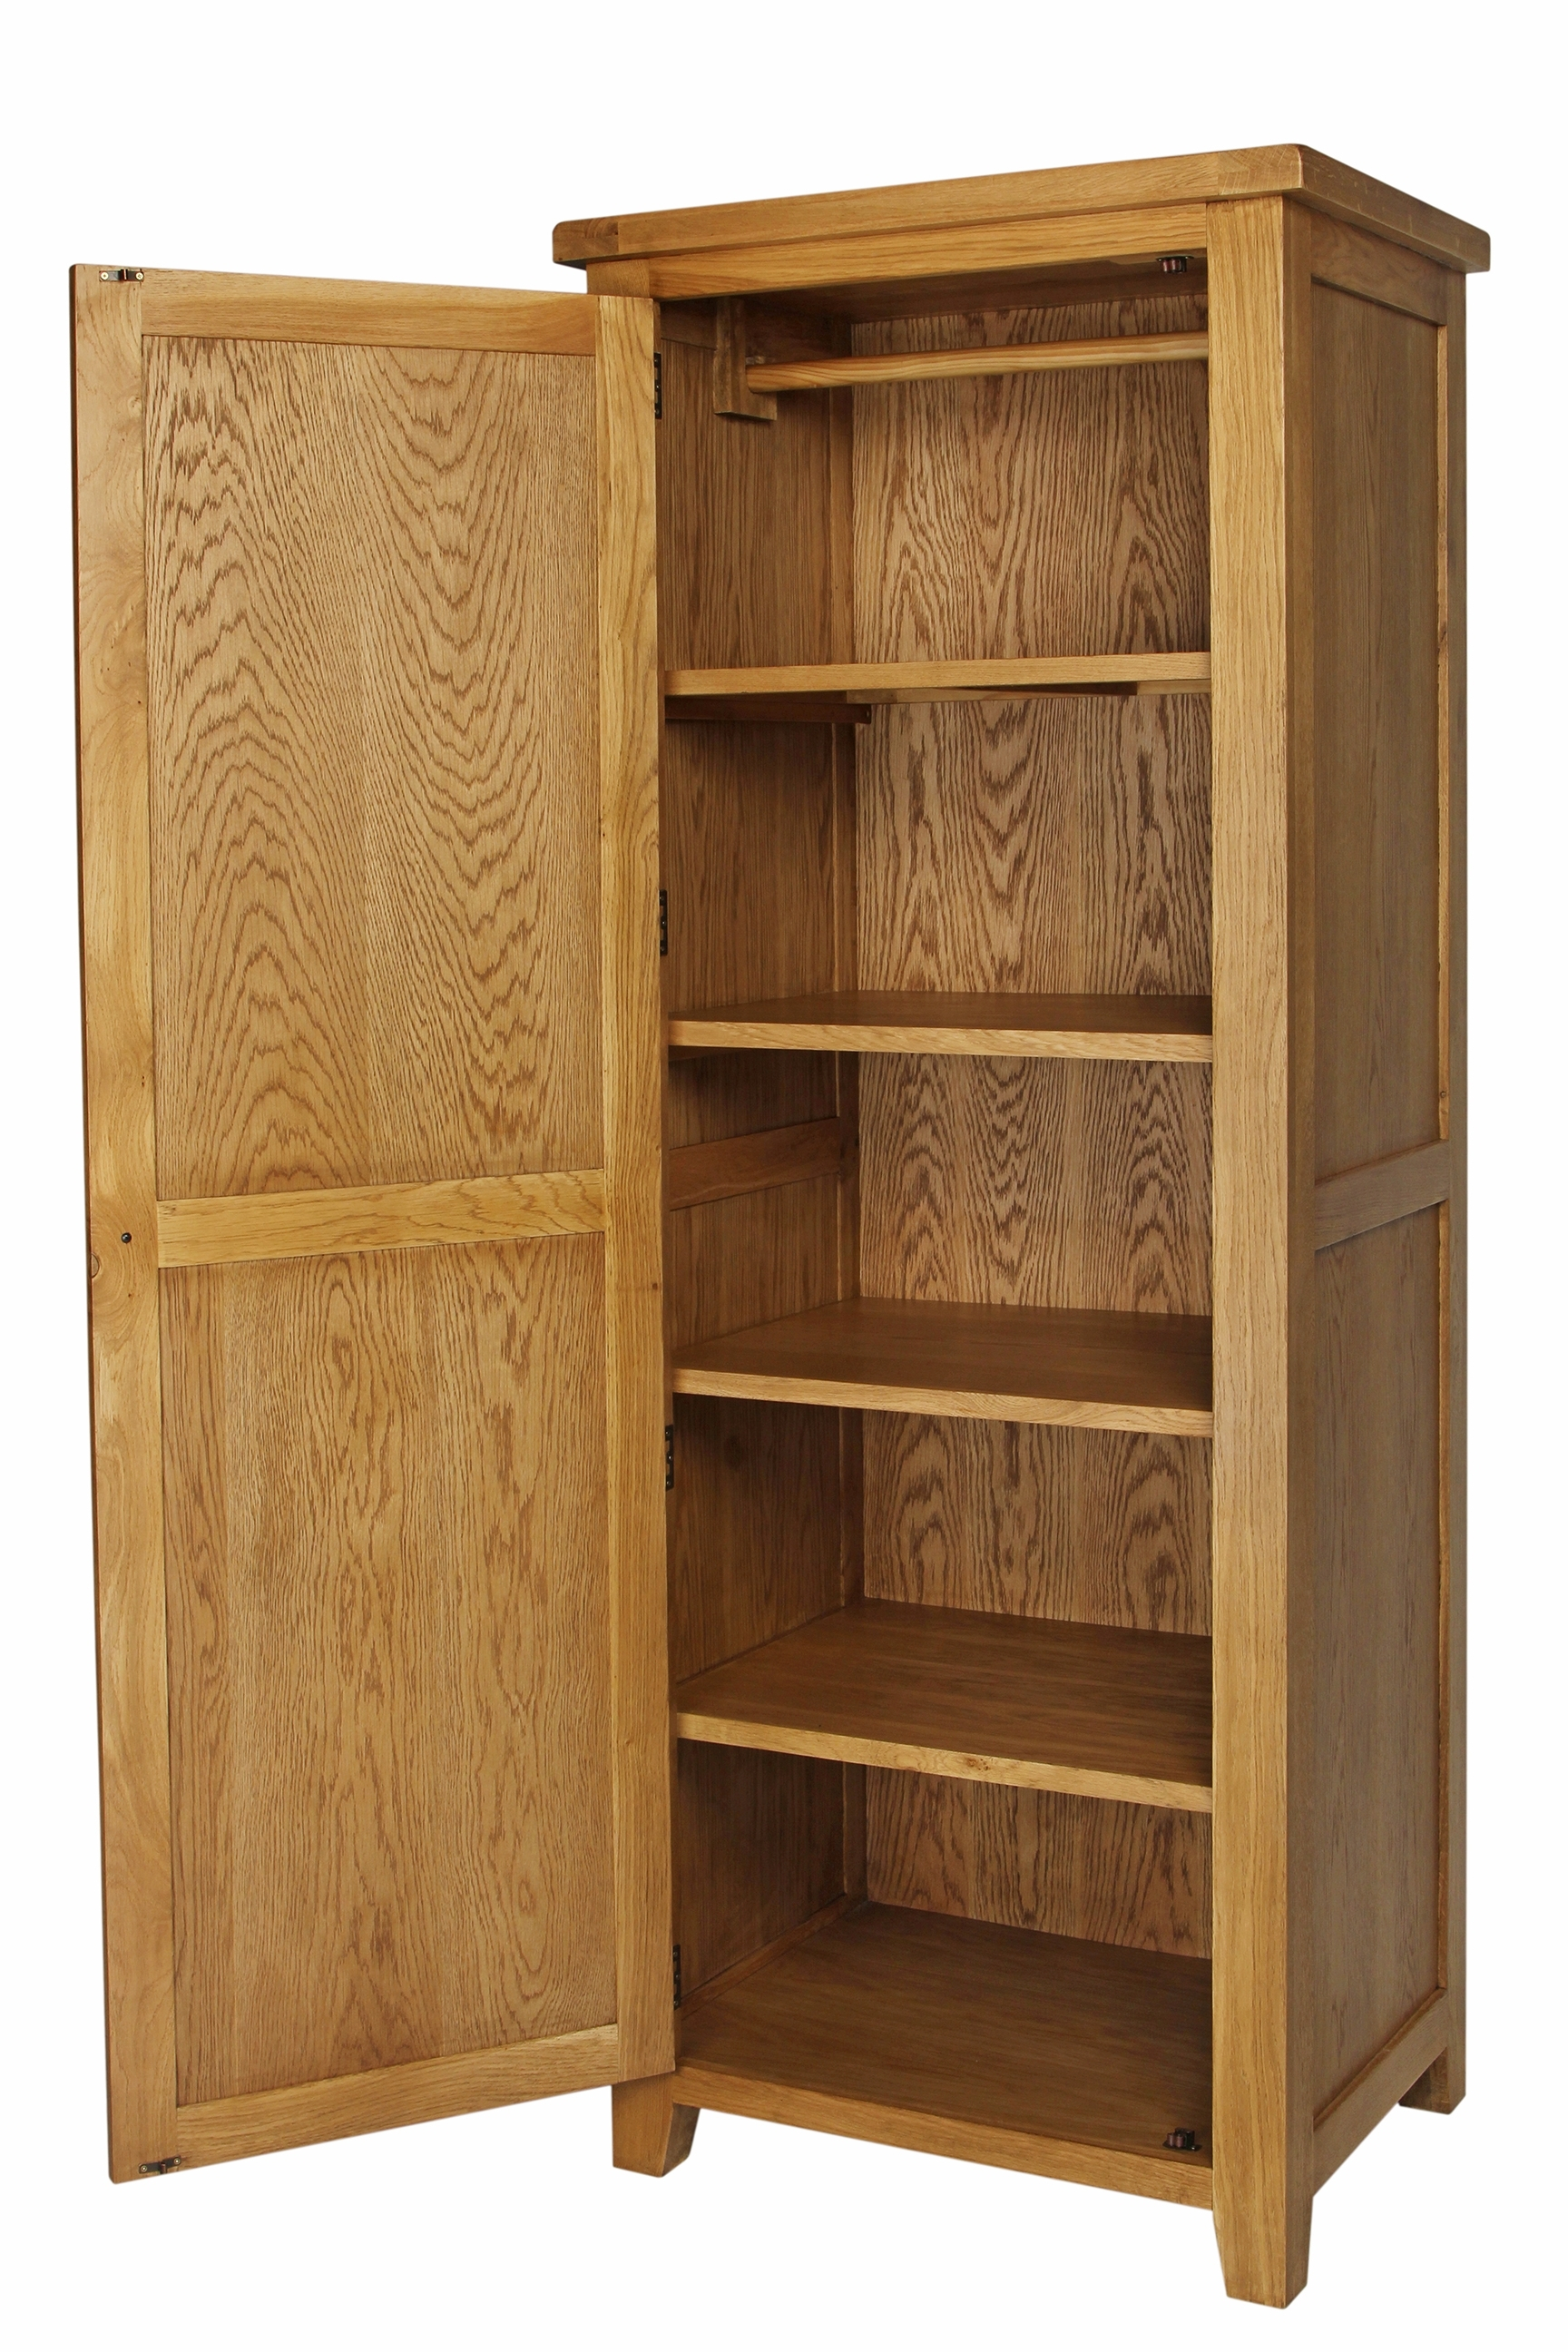 Single Wardrobes With Regard To Newest Oak Single Wardrobe – Furniture Importers (View 10 of 15)